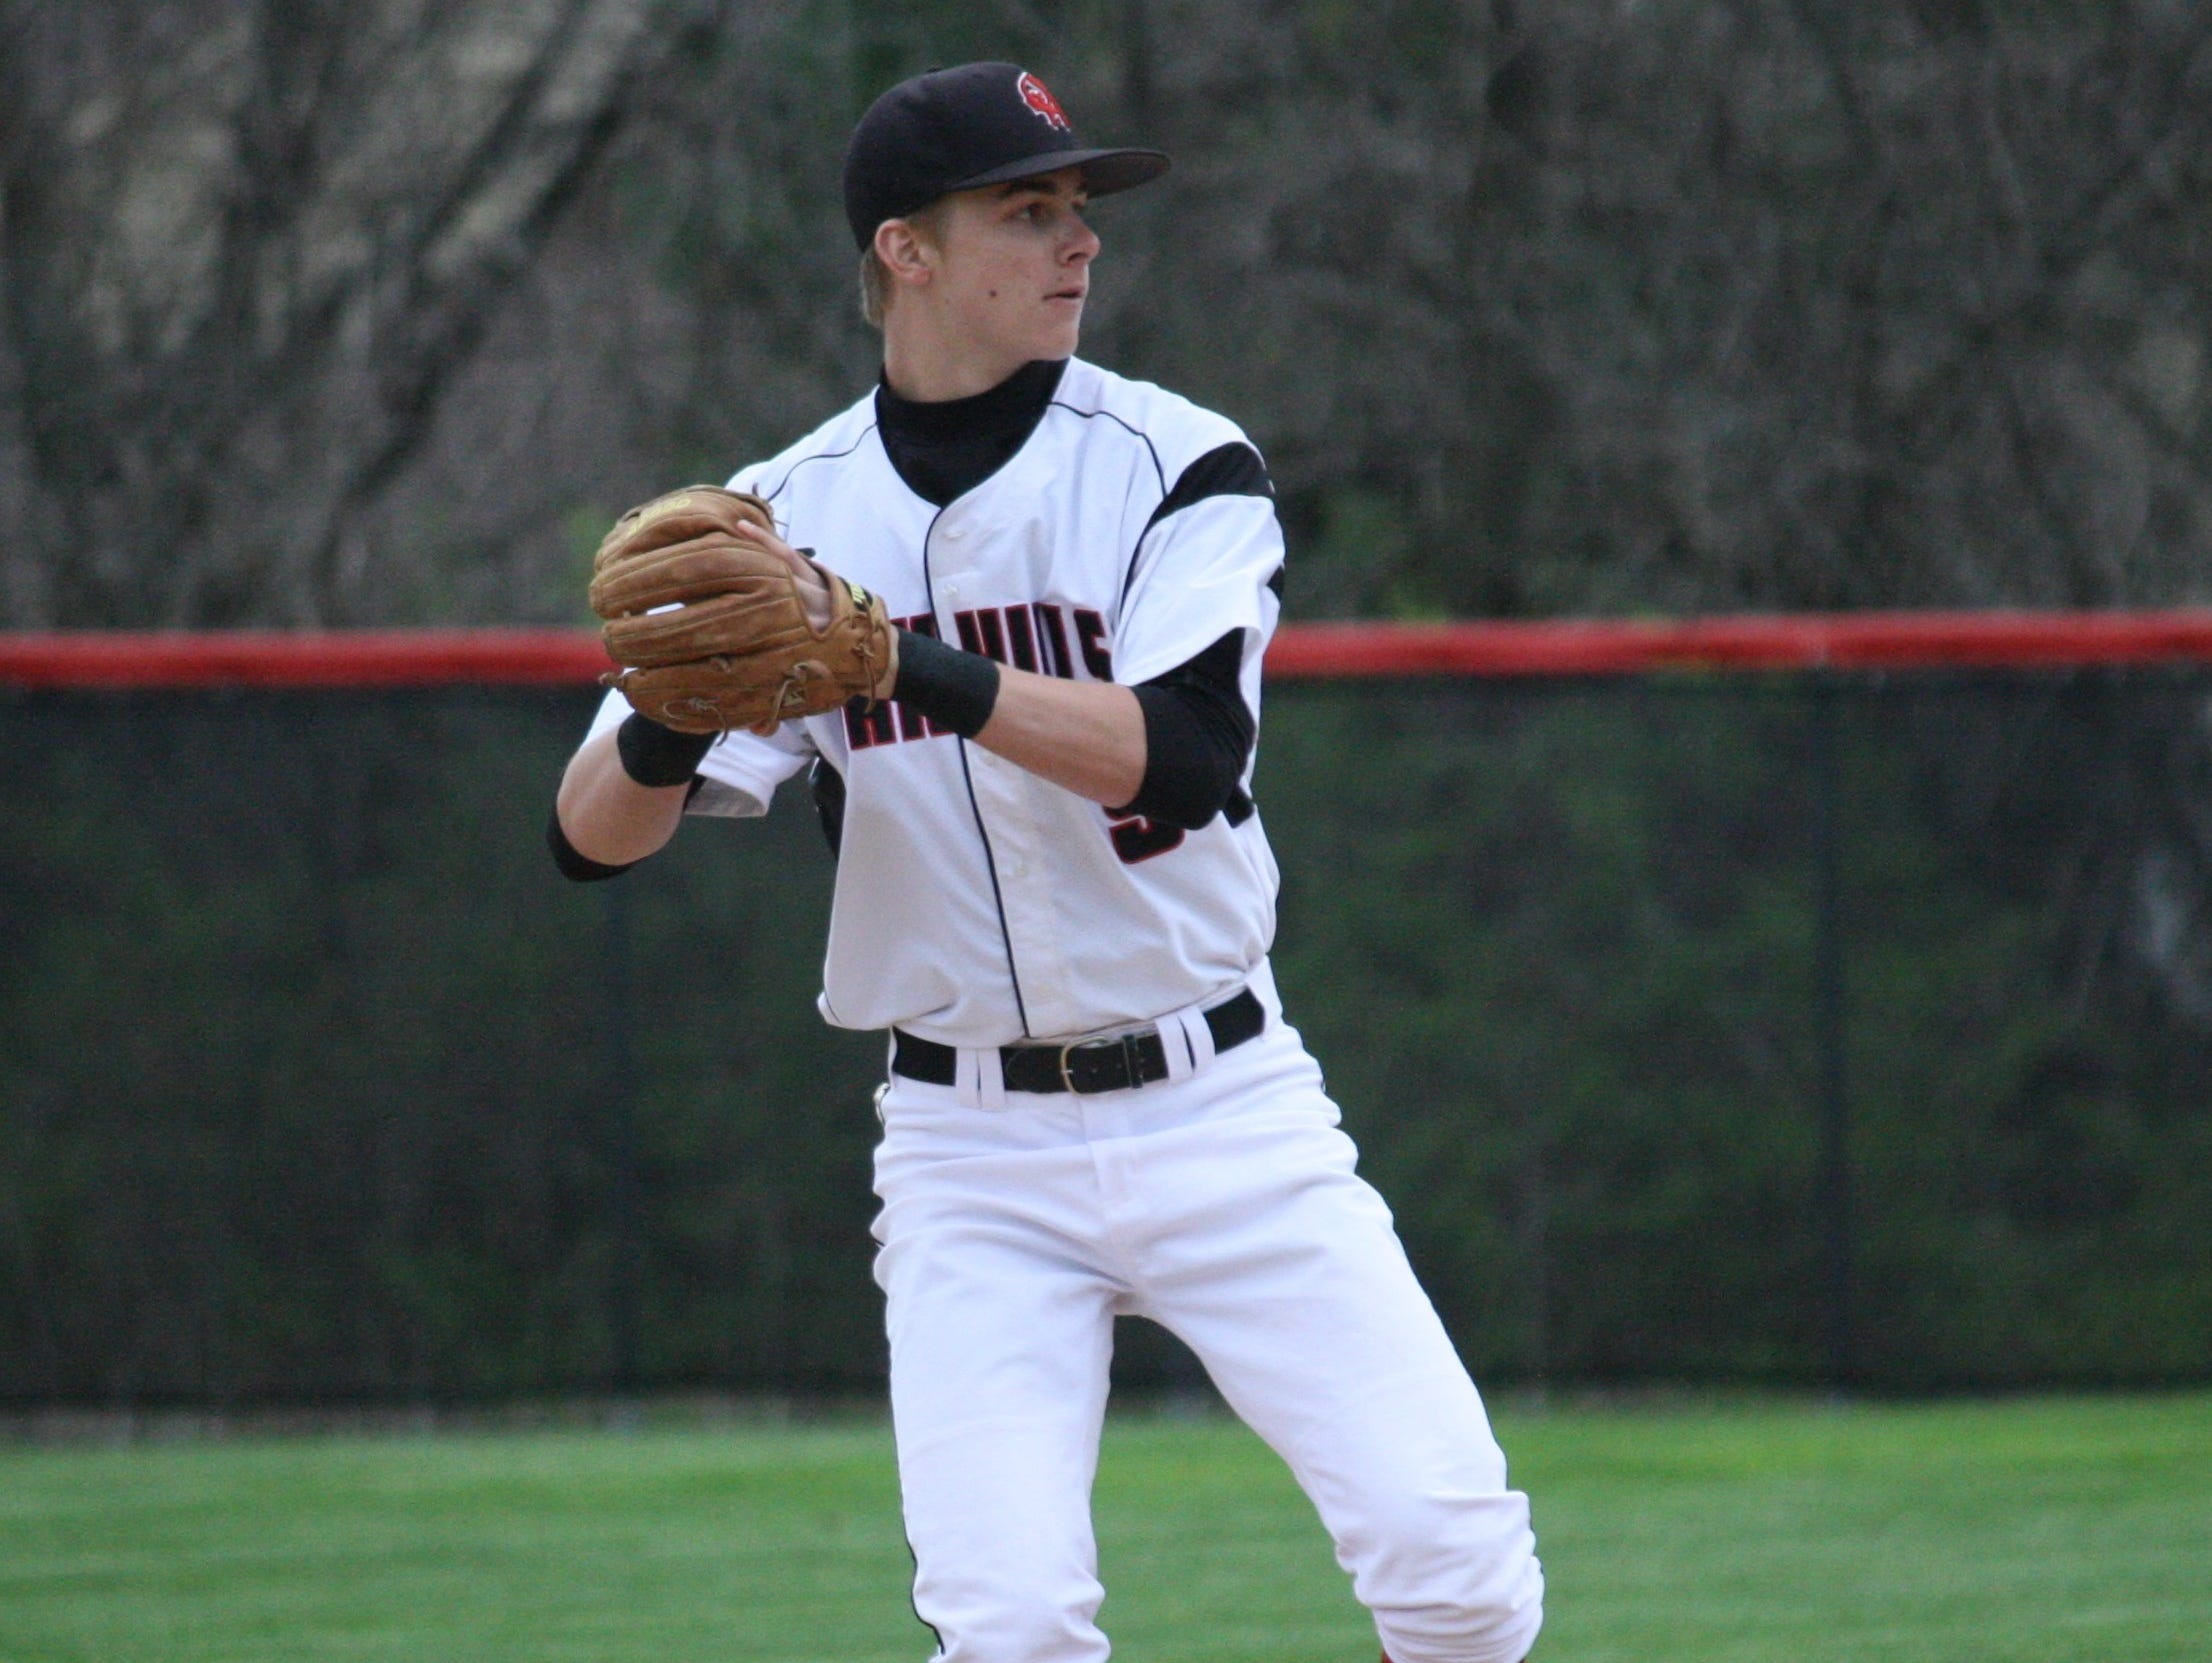 Oak Hills High School senior shortstop Jared Drewes makes a play in the hole against Princeton on April 15 at Oak Hills.